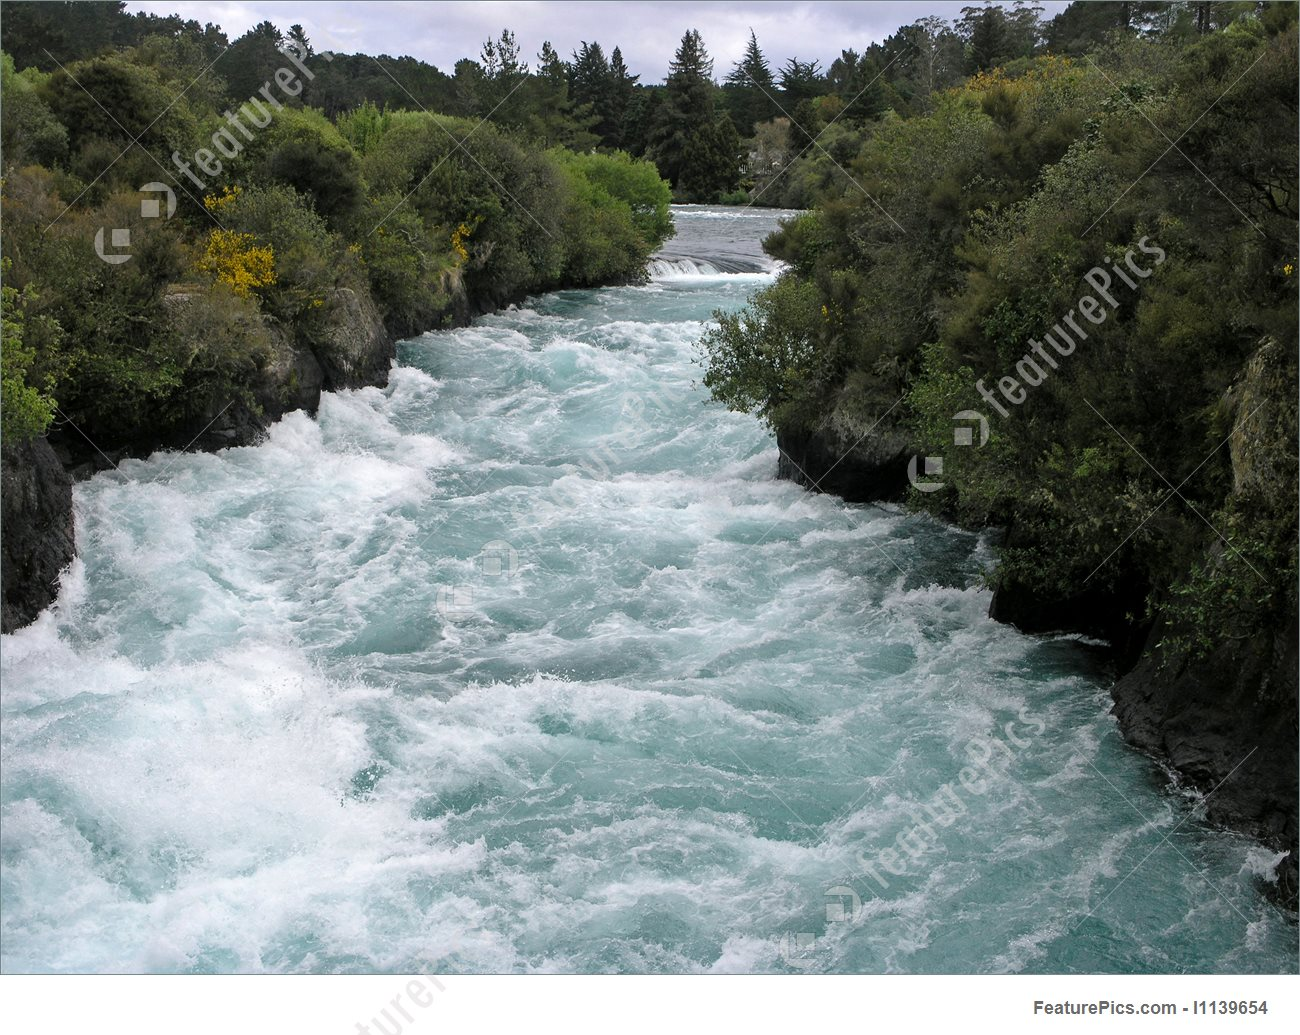 White Water Huka Falls New Zealand Stock Photo I1139654 at FeaturePics.